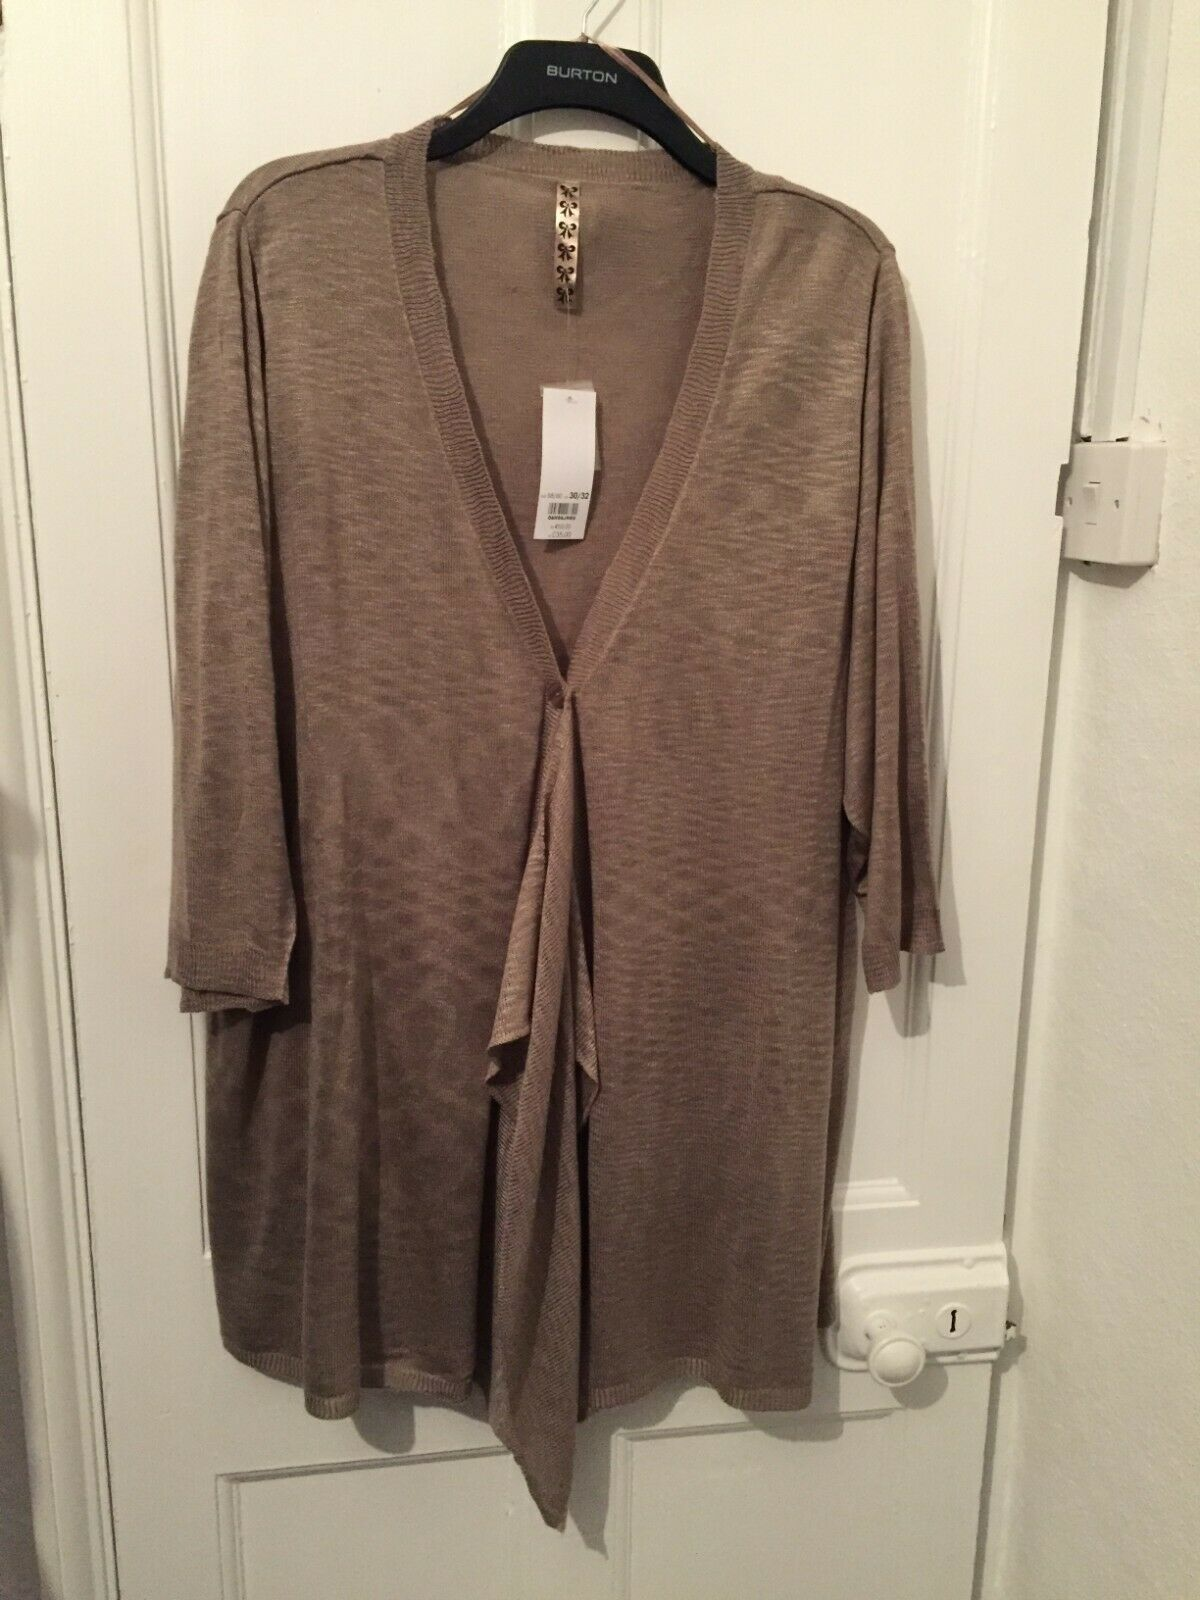 Evans Neutral 3 4 Length Sleeved Cardigan Size 26 - 28 (BNWT) Brand NEW With Tag